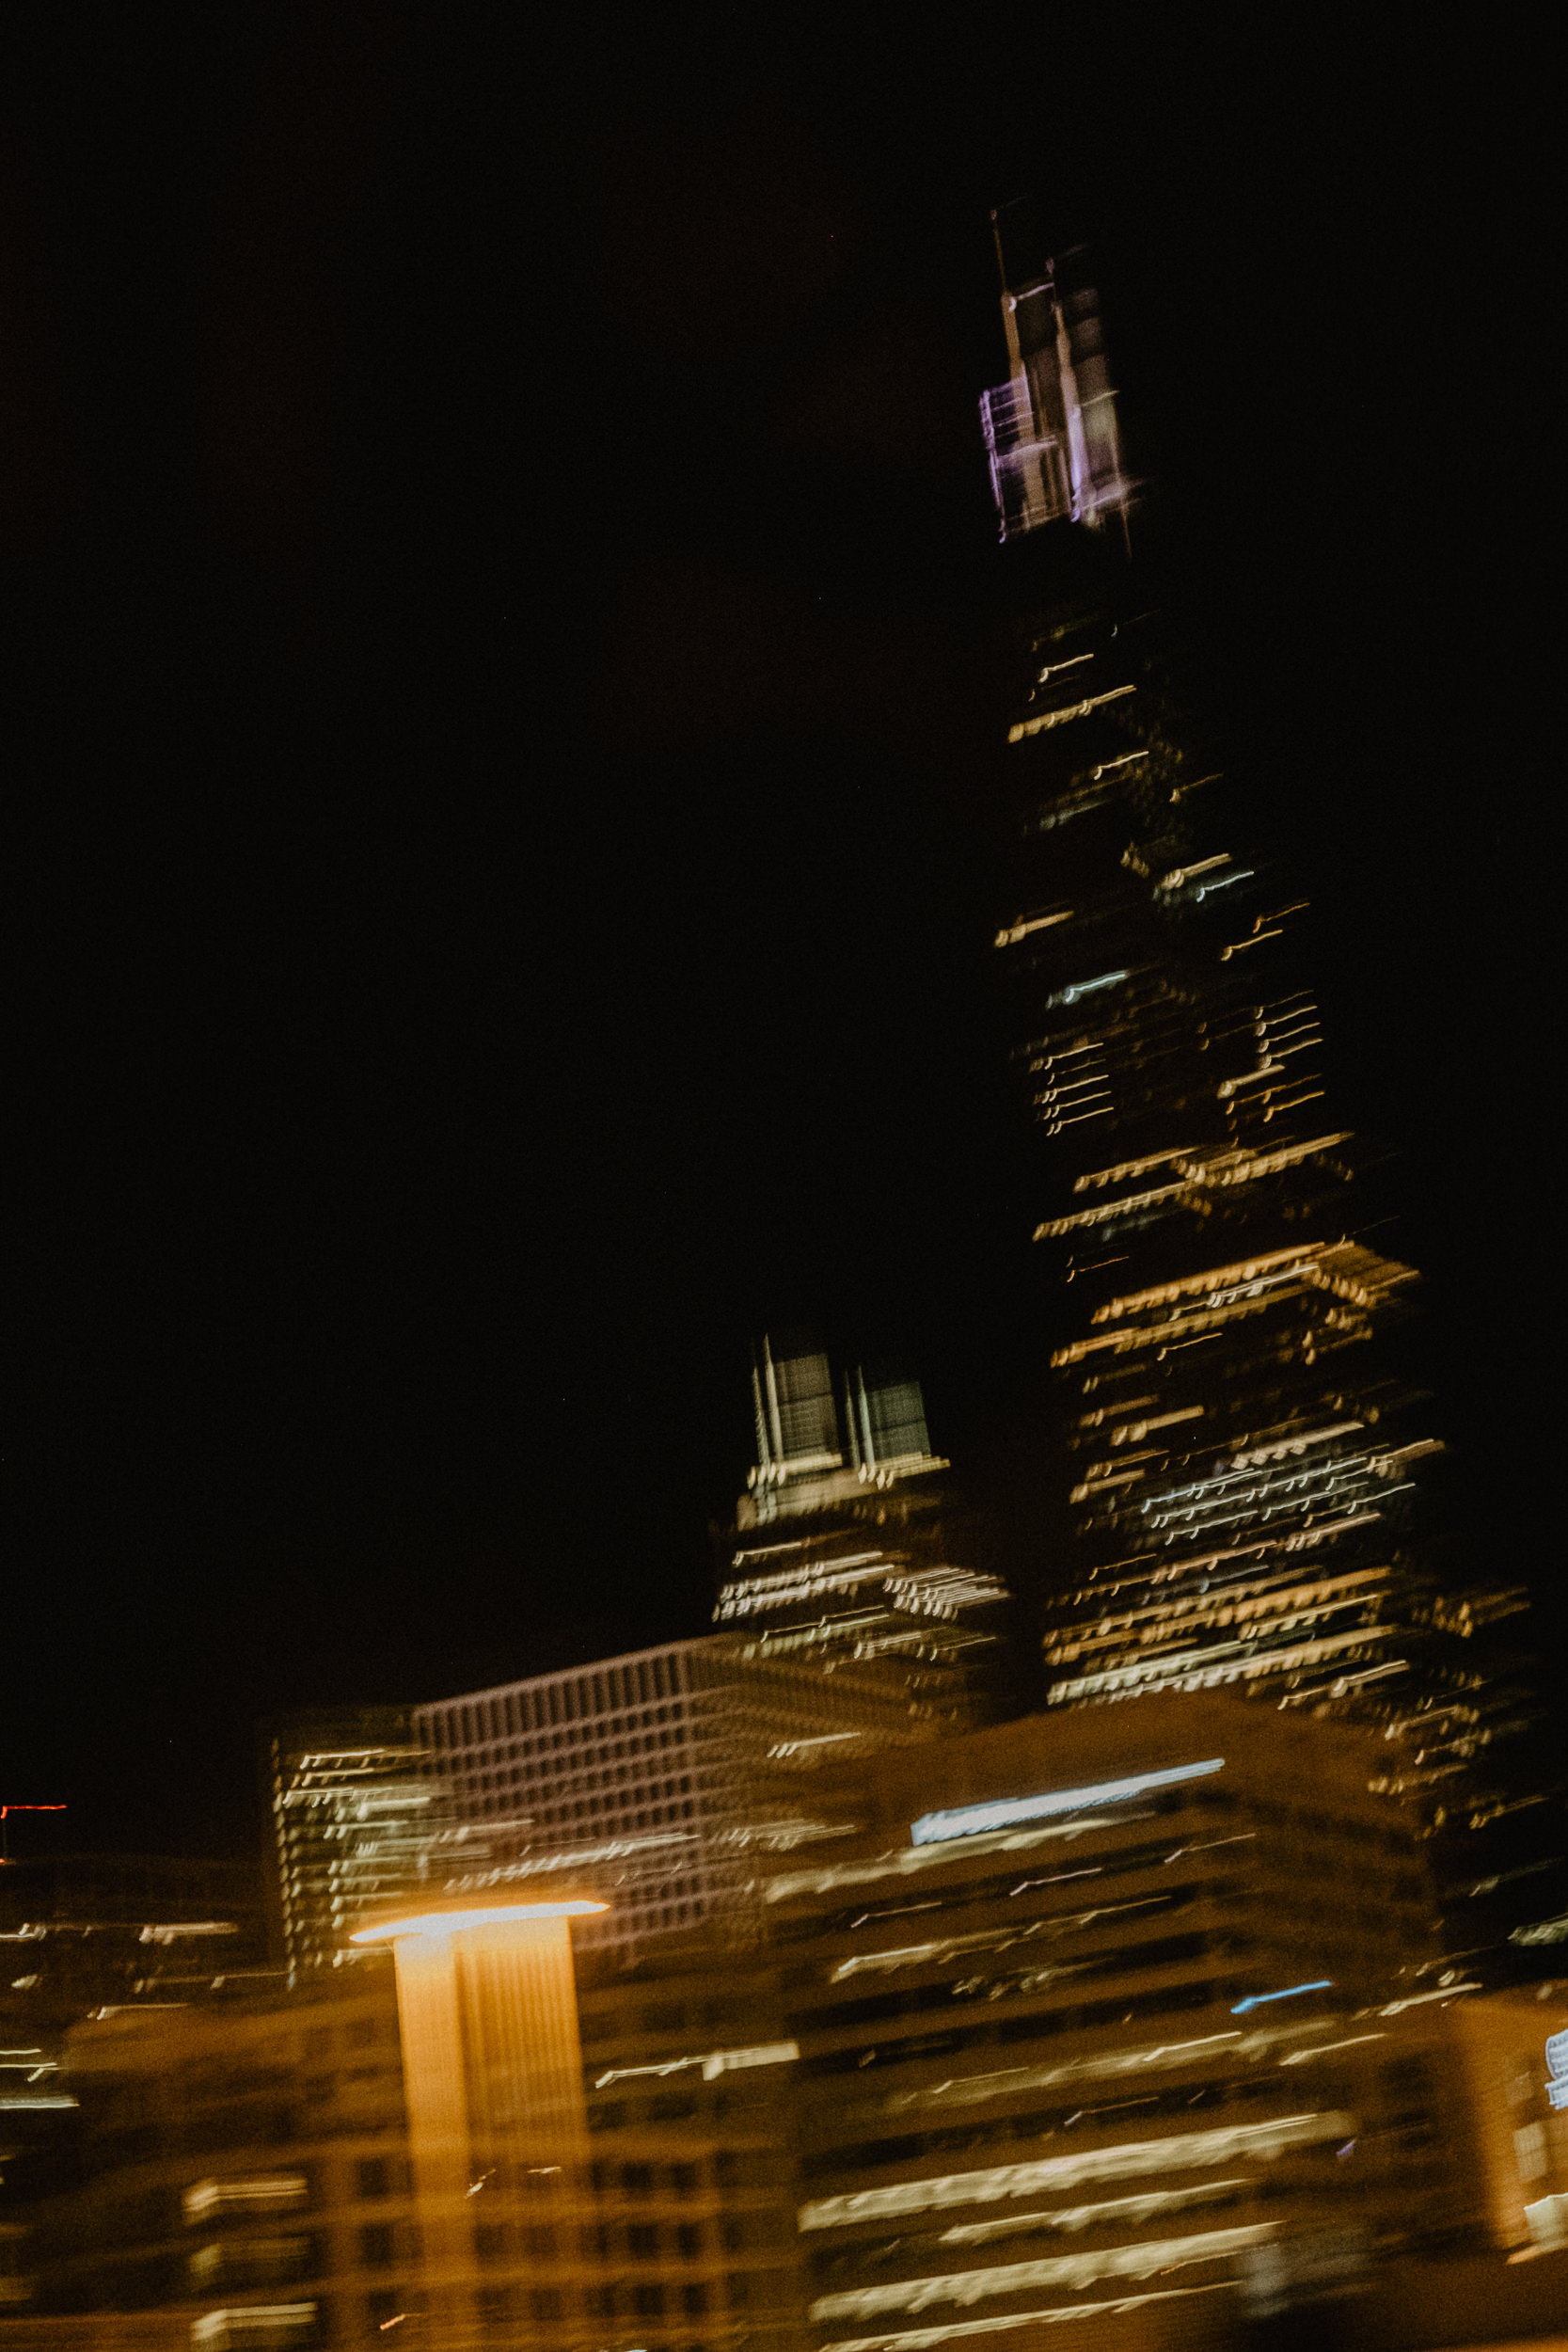 sLA to Chicago via Route 66 - July 2018-273.jpg